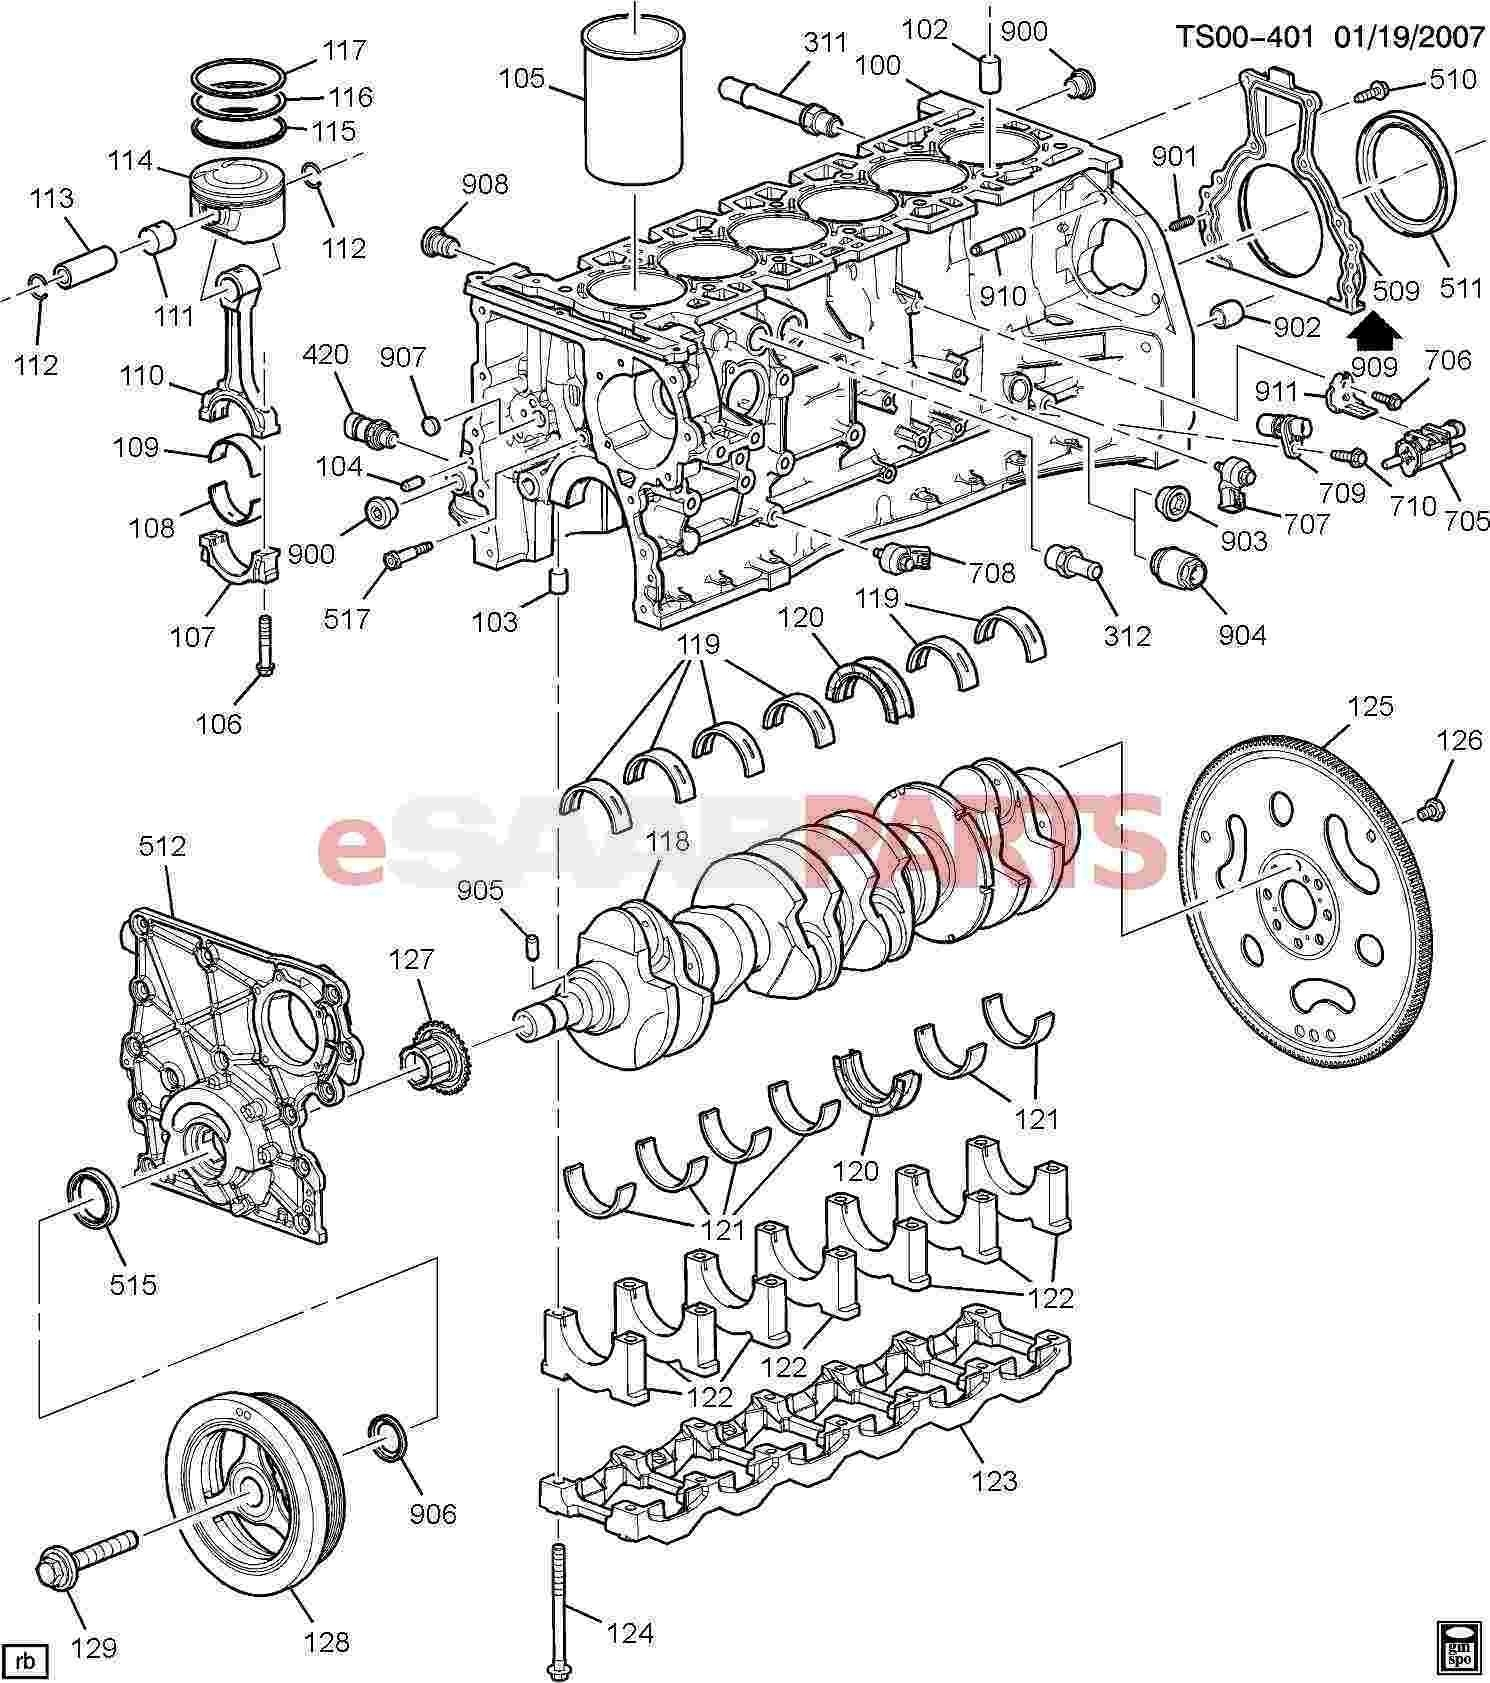 wrg 2586] saab 9 5 engine wiring diagram2001 saab 9 5 wiring diagram saab wiring diagrams instructions